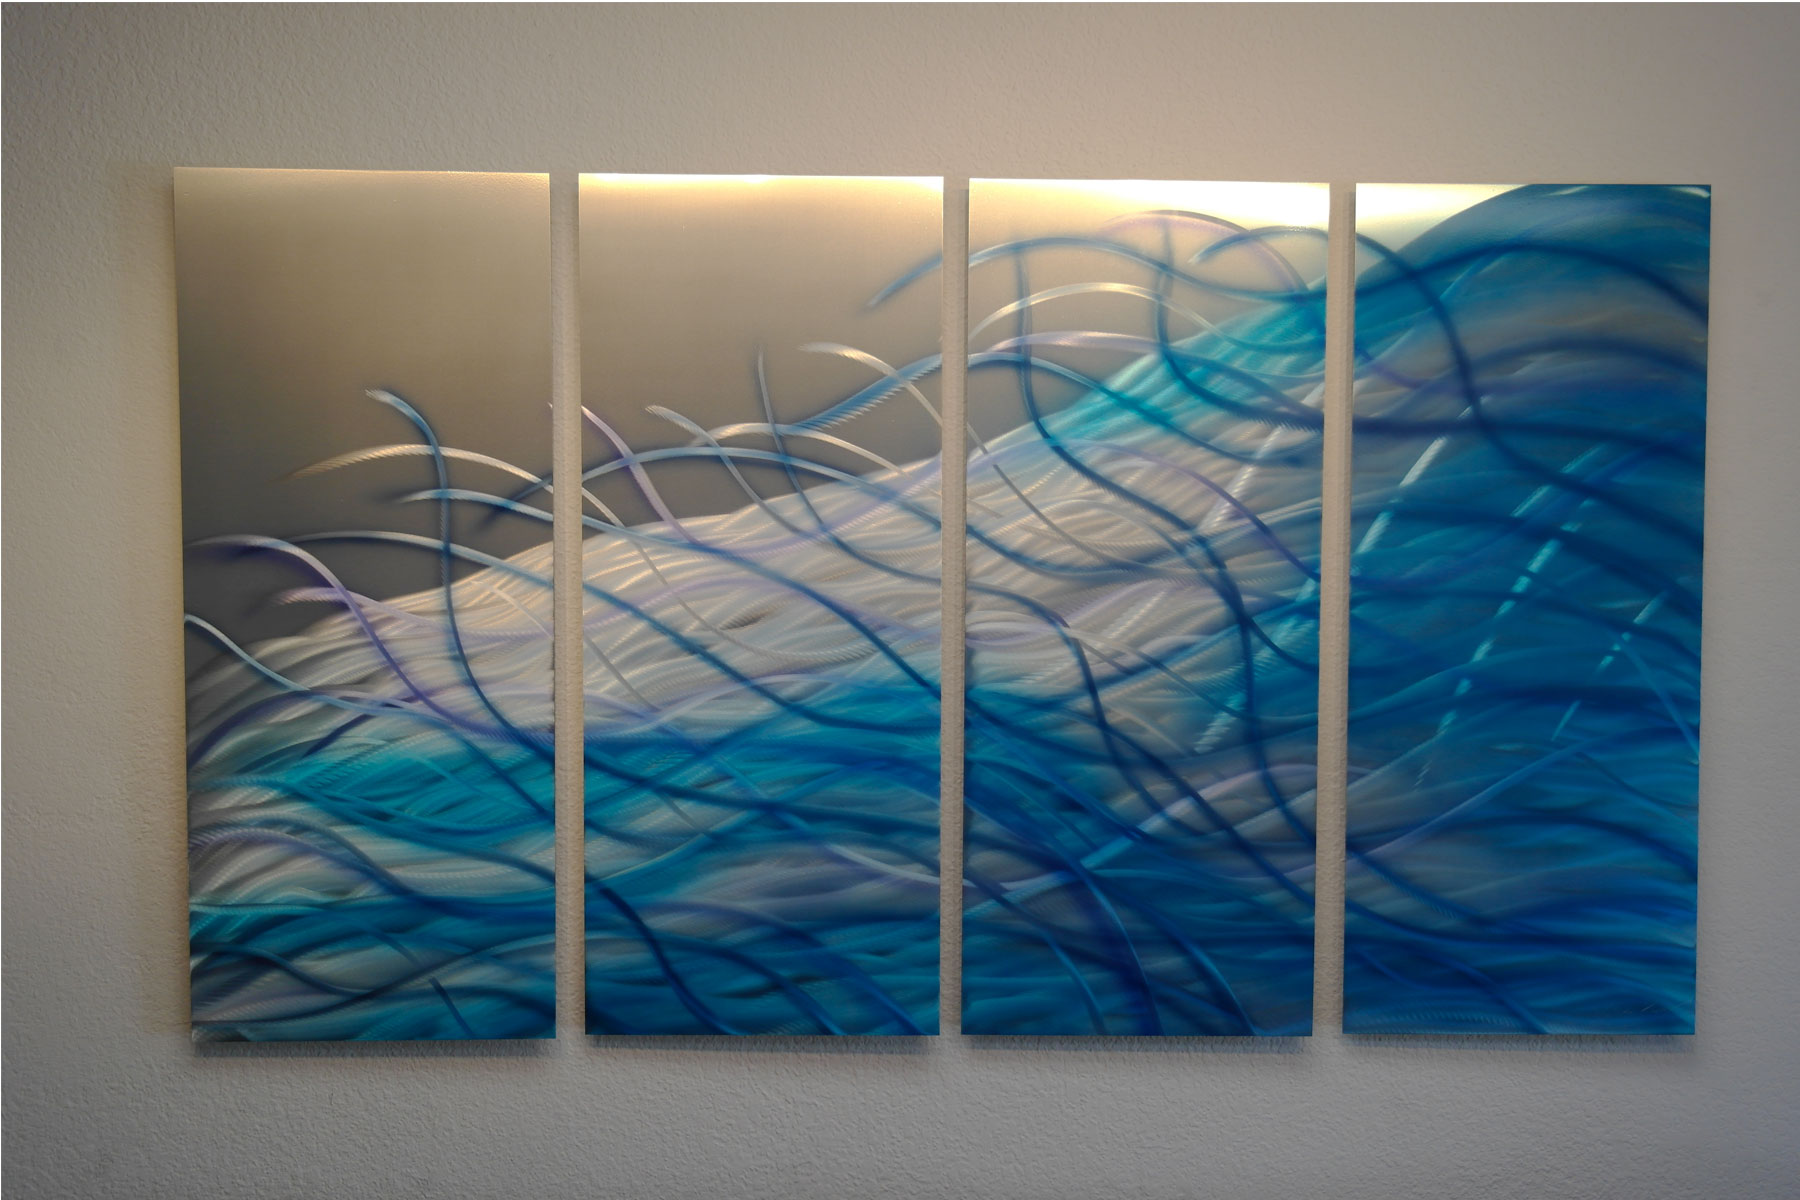 Blue Metal Wall Art Beauteous Resonance Blue 36  Abstract Metal Wall Art Contemporary Modern Inspiration Design